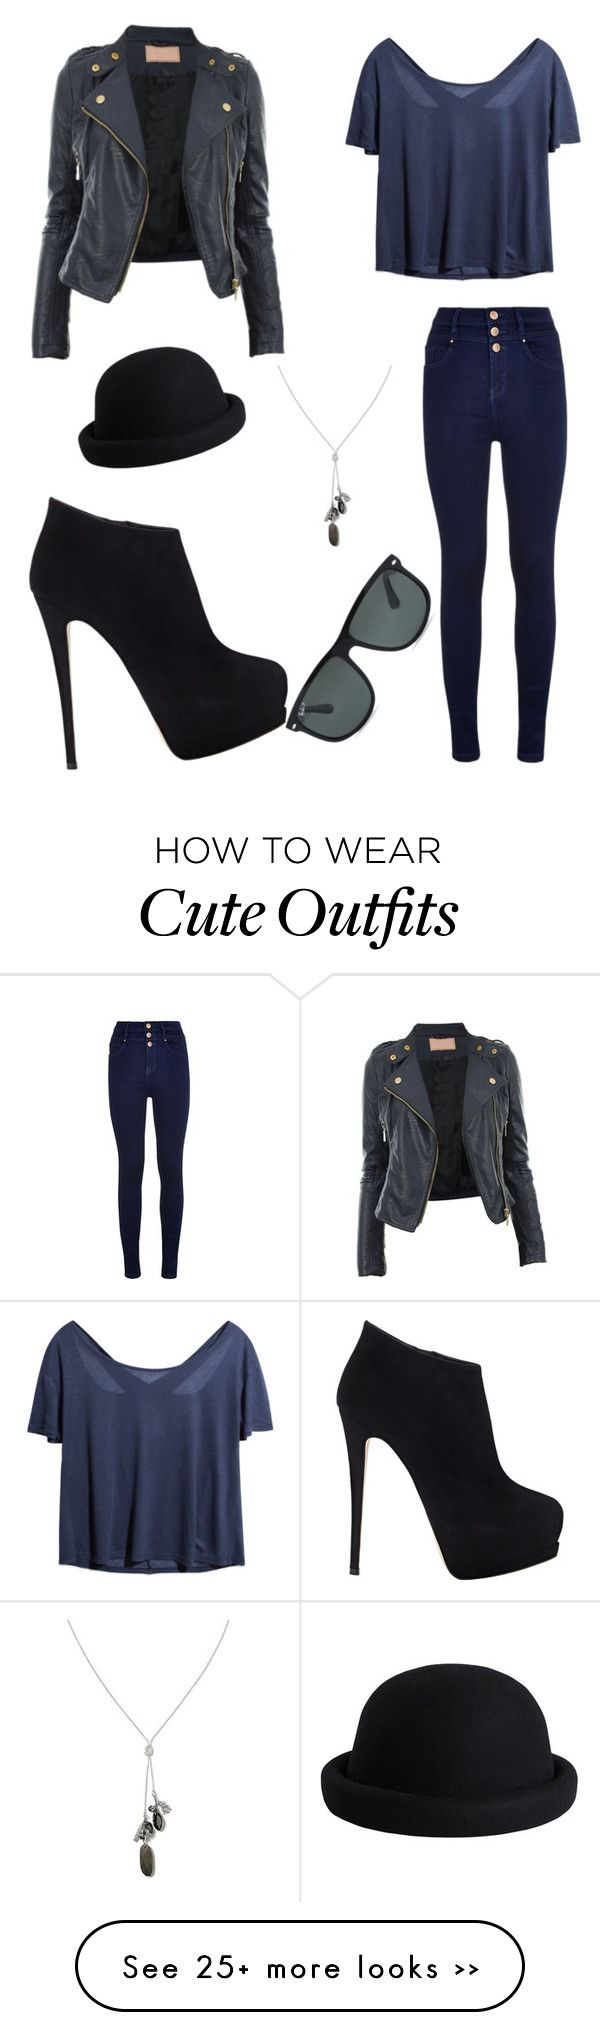 """""""cute outfit"""" by talitron on Polyvore"""